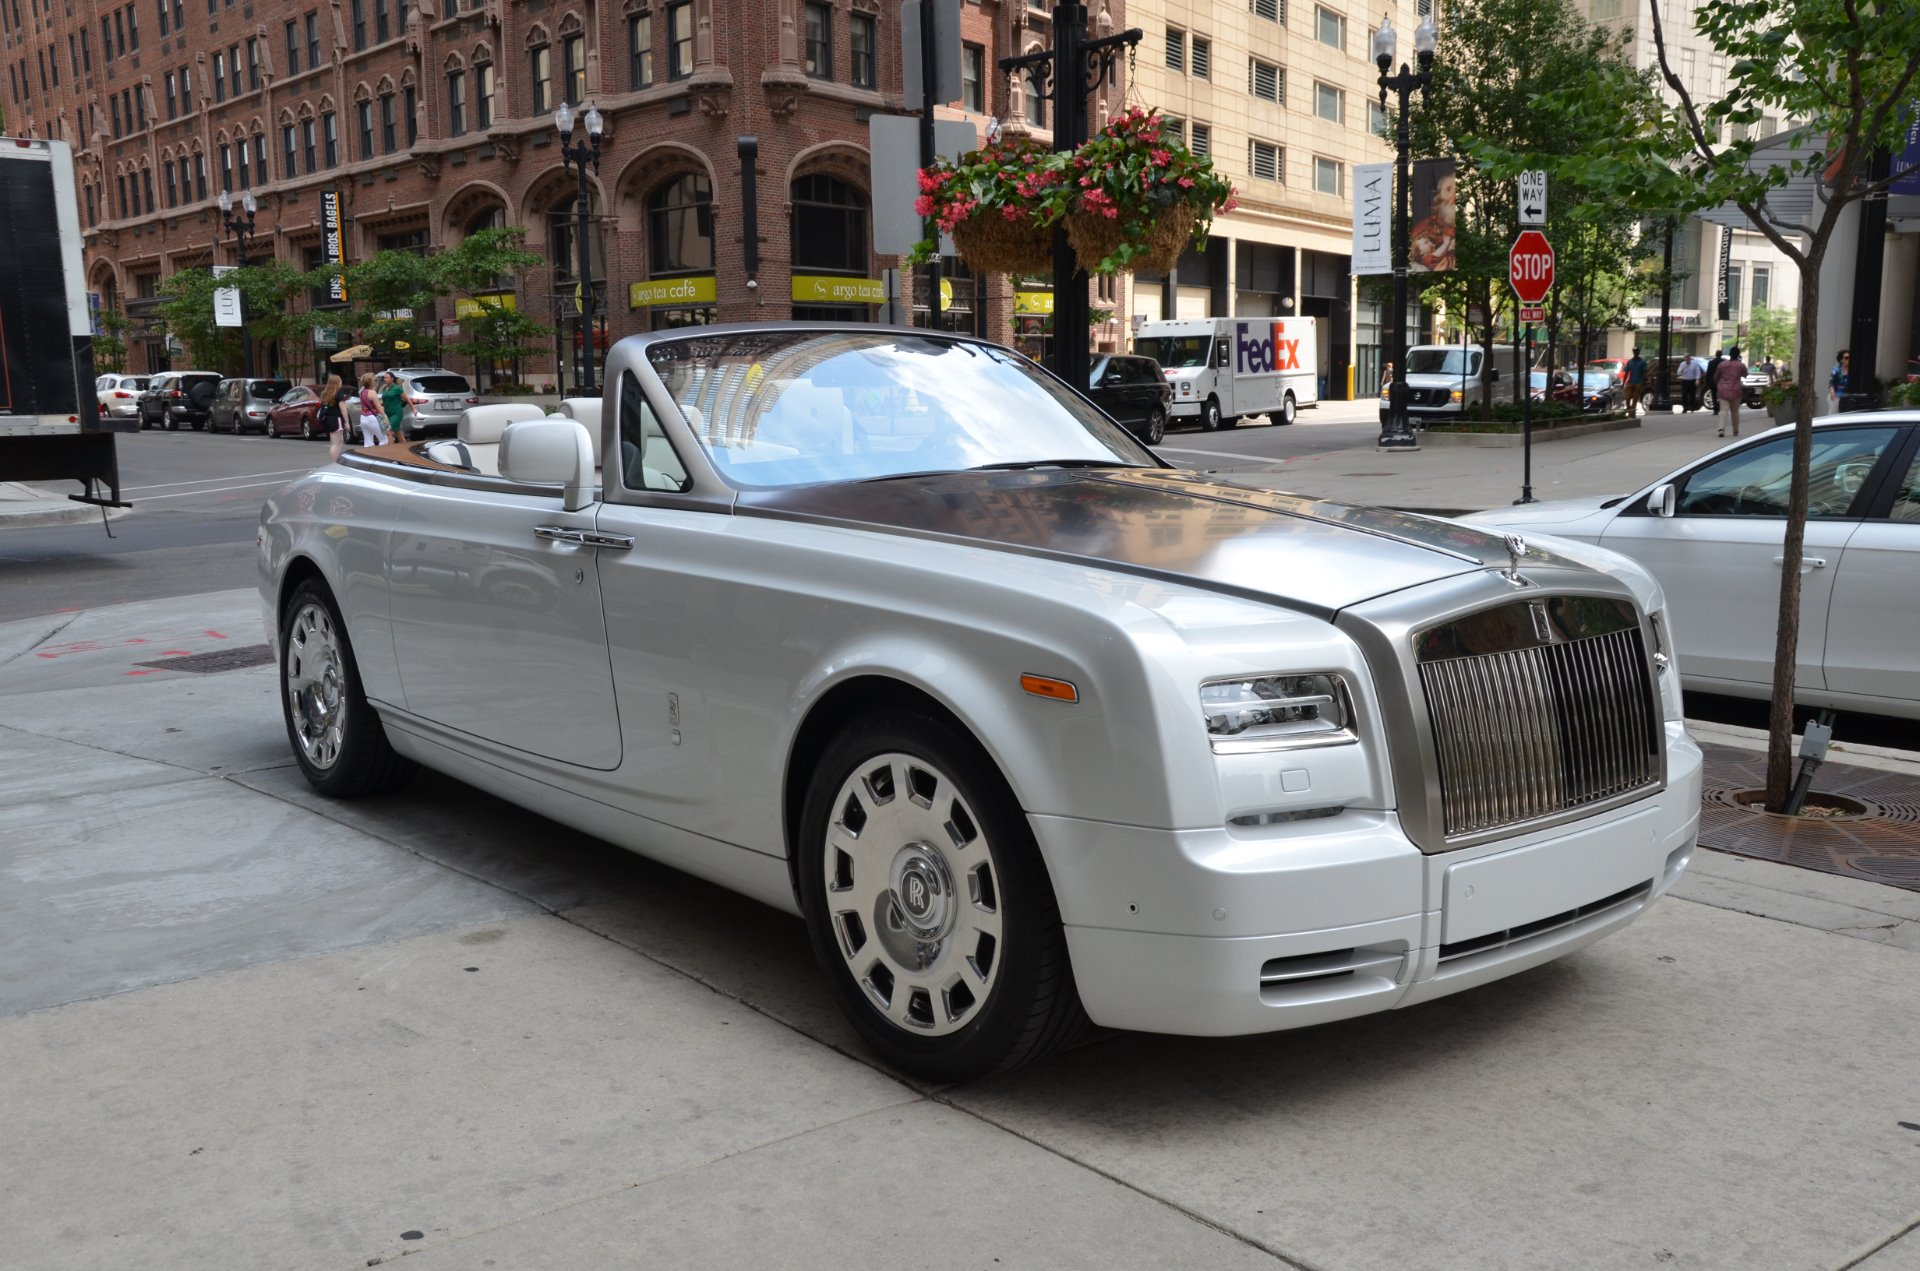 2017 rolls royce phantom drophead coupe stock r318 for sale near chicago il il rolls royce. Black Bedroom Furniture Sets. Home Design Ideas